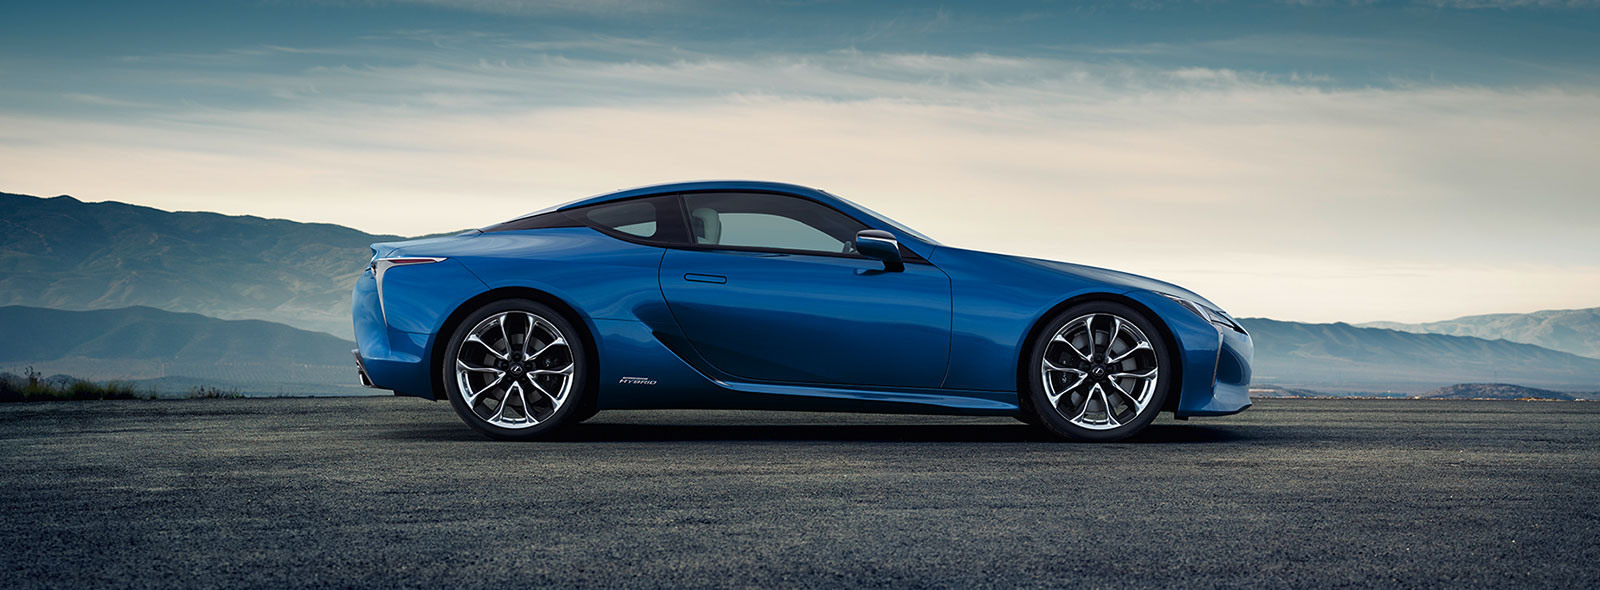 2017 Lexus LC Design Gallery 007